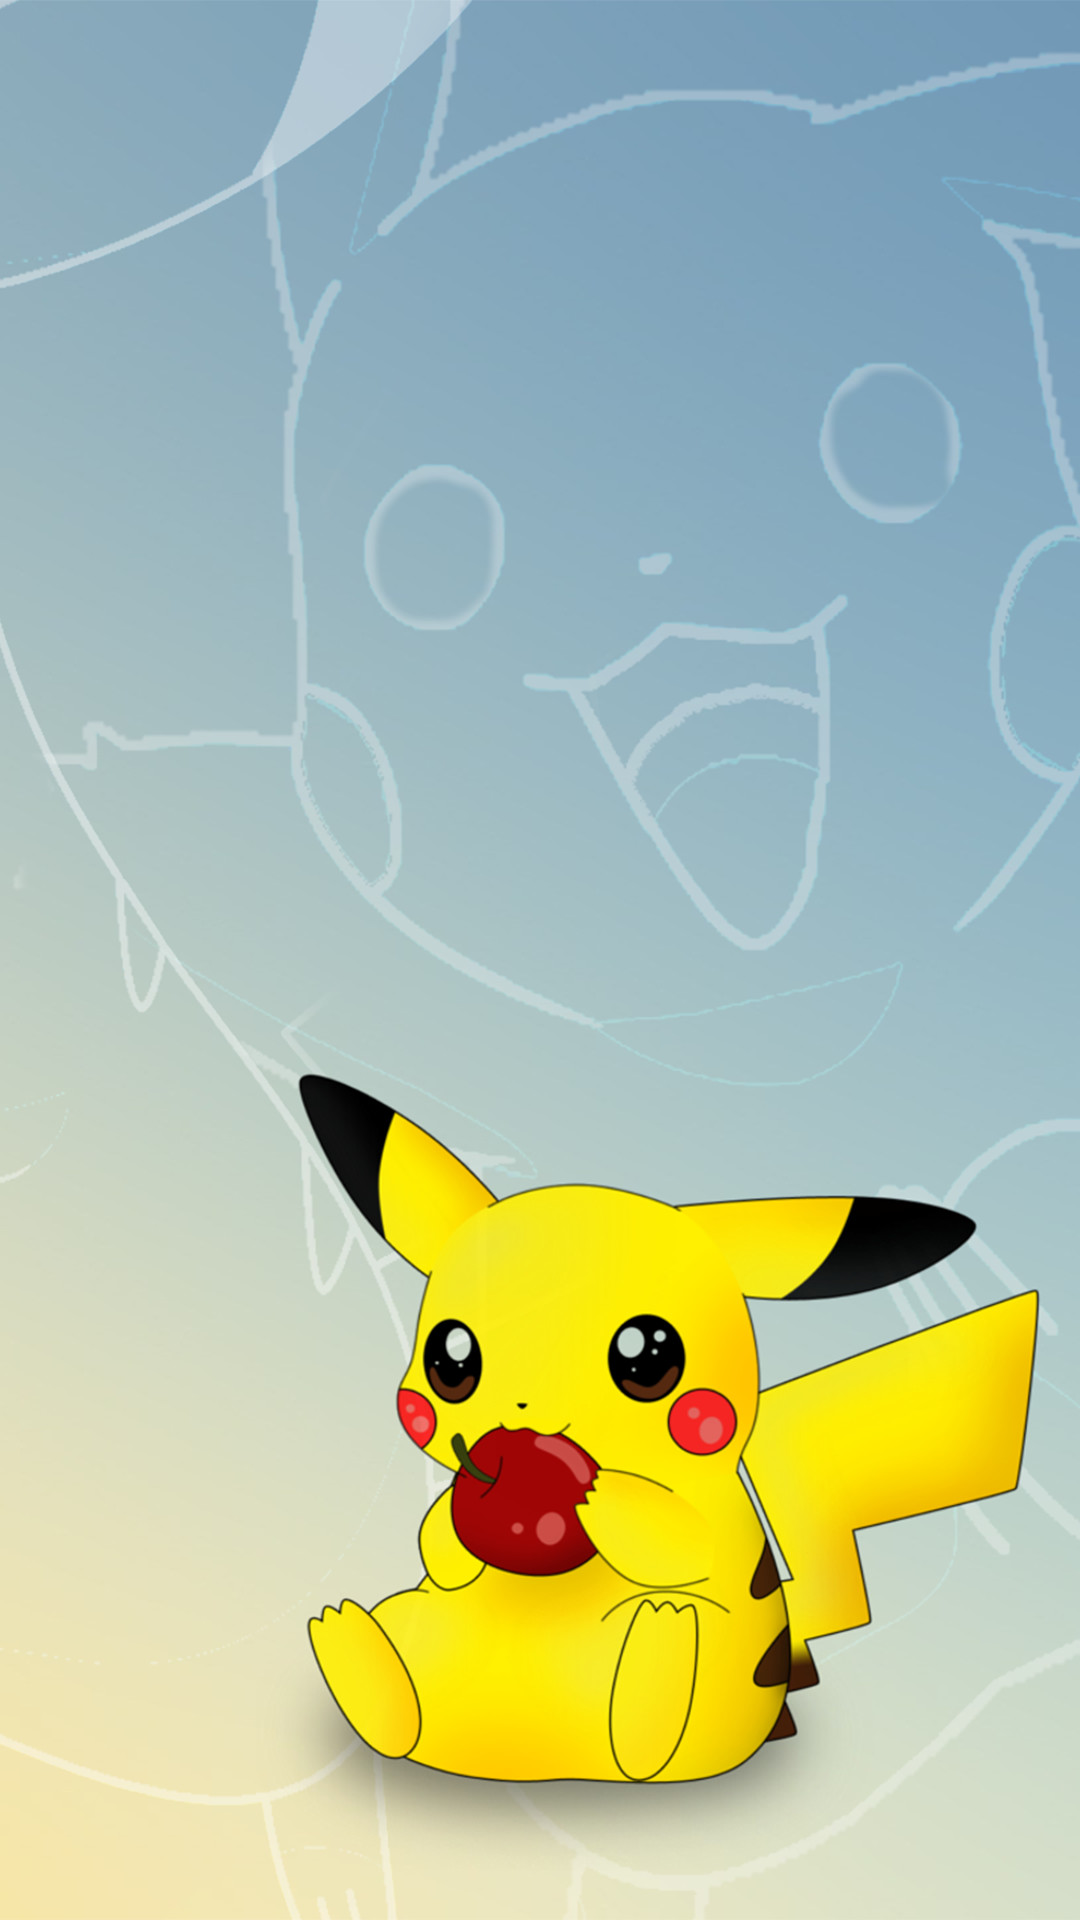 1080x1920 download-pokemon-iphone-backgrounds-wallpaper-hd-07